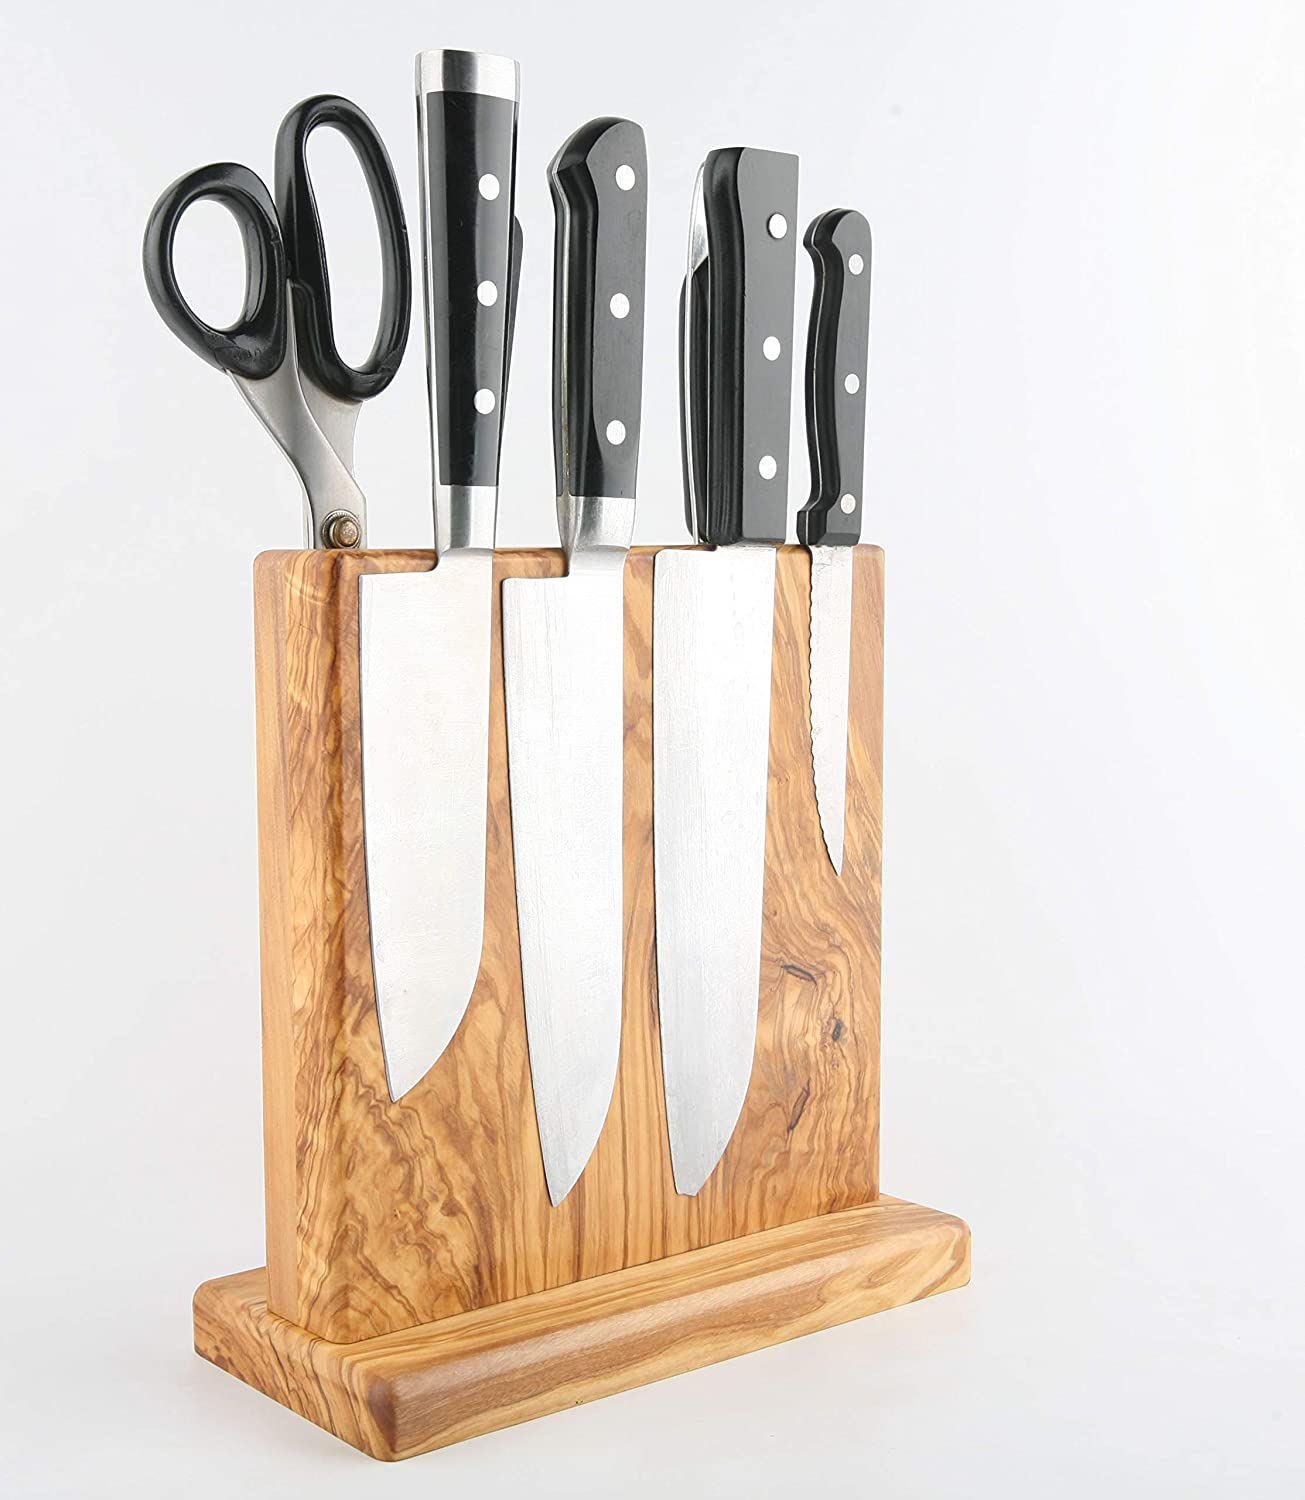 BOUMBI Beautiful Grain Wood Magnetic Knife Block with Strong Magnets, Double Side Cutlery Display Stand and Storage Rack (Olive Wood)